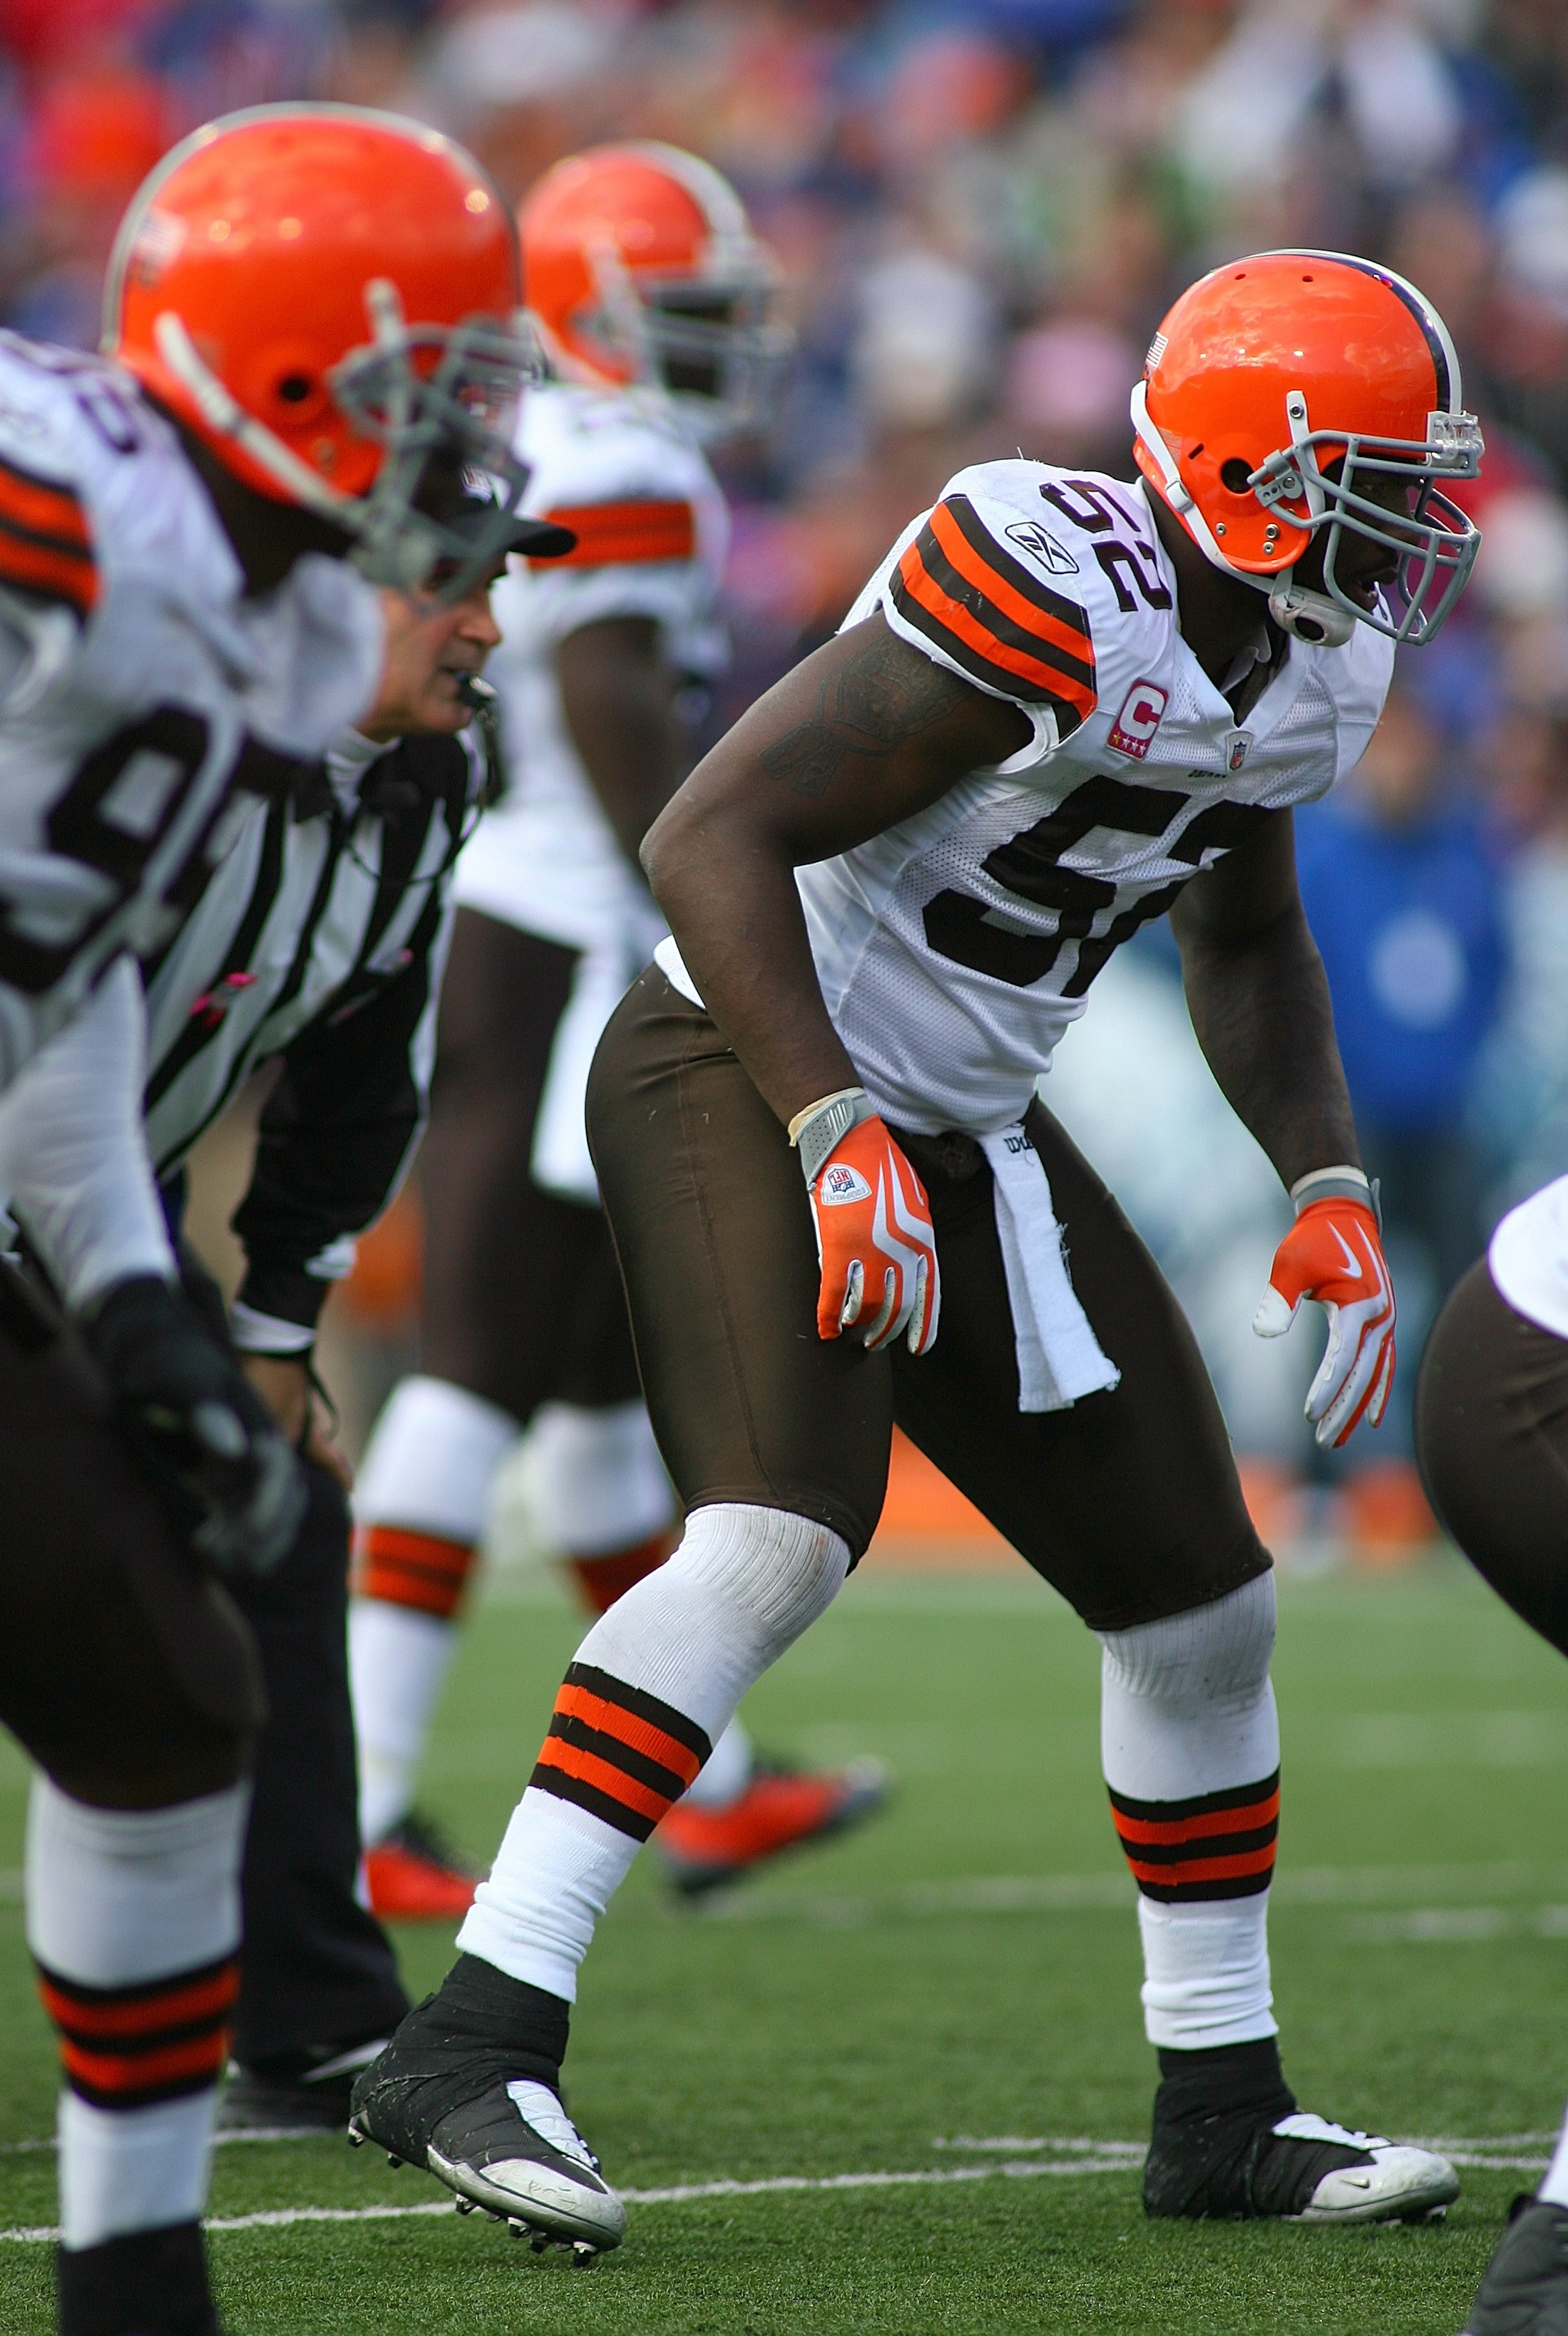 ORCHARD PARK, NY - OCTOBER 11:  D'Qwell Jackson #52 of the Cleveland Browns lines up in his defensive position during their NFL game against the Buffalo Bills at Ralph Wilson Stadium on October 11, 2009 in Orchard Park, New York. The Browns defeated the B